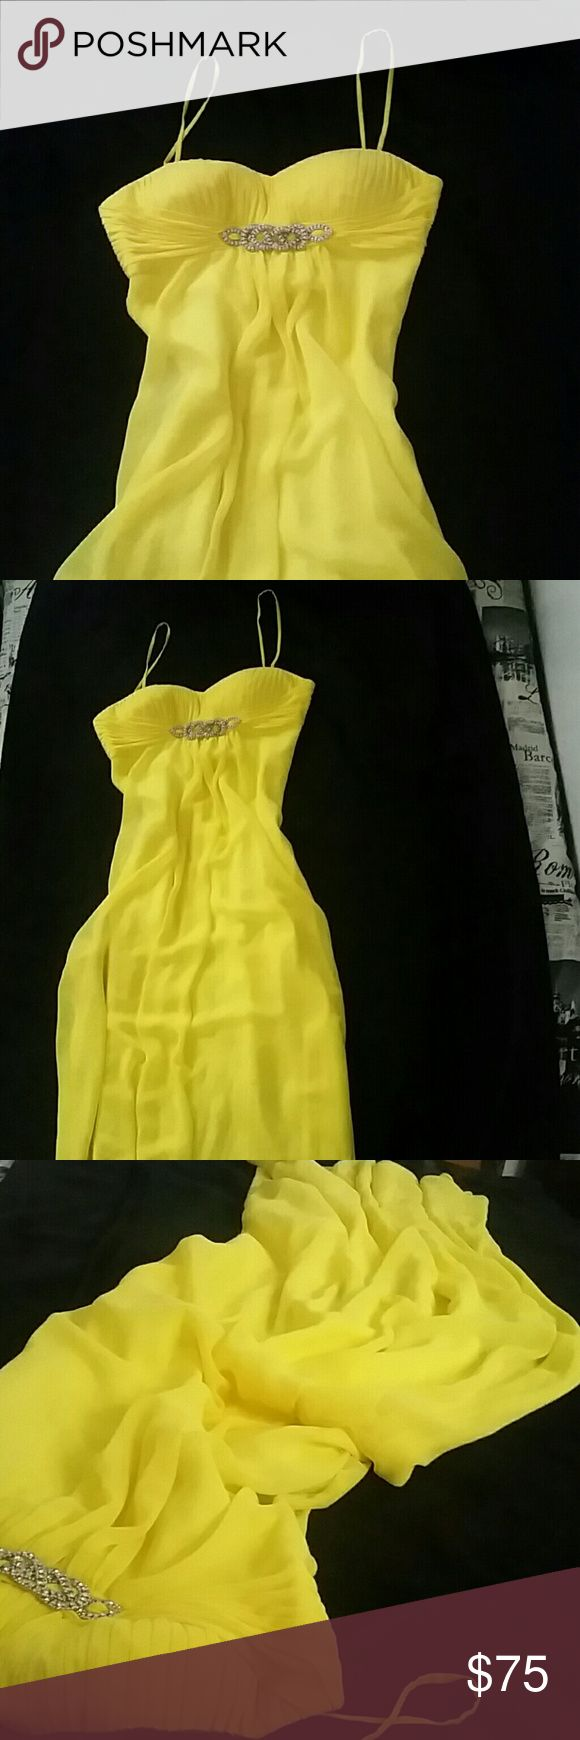 Gorgeous Yellow Dress formal This is such a pretty yellow dress for any dance or formal event. It has a silver, sparkly, feature under the cups and drapes down nicely from delicate straps. There is a small unnoticeable snag near the bottom, please ask for pictures if interested. Worn once, size 4. Original price was a good guess, as I do not remember correctly. Perfect for anything! Size 4 Cache, zip side.  Ask questions and make offers. Cache Dresses Prom